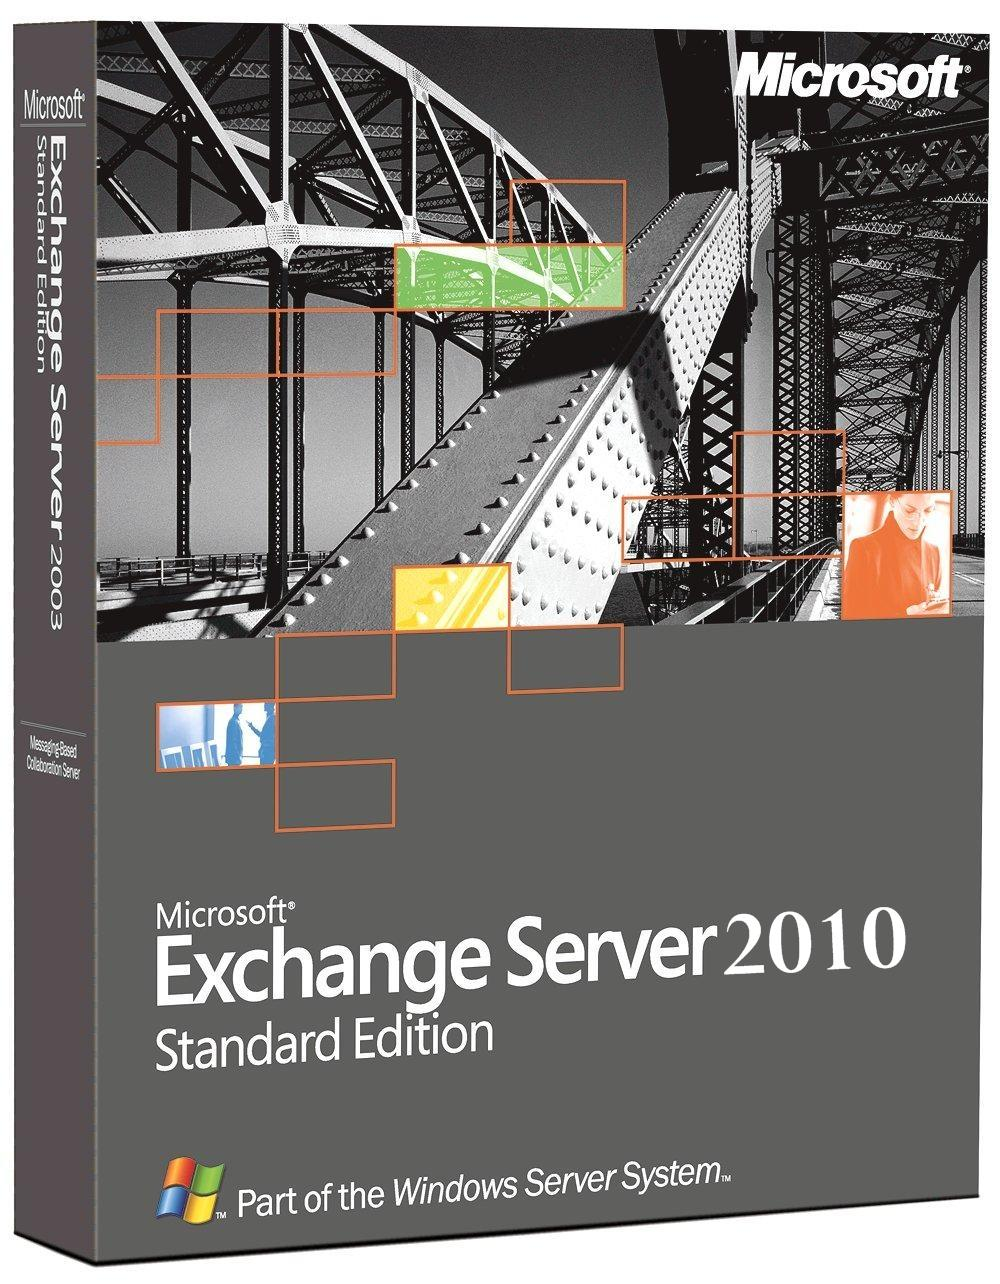 Microsoft Exchange Server 2010